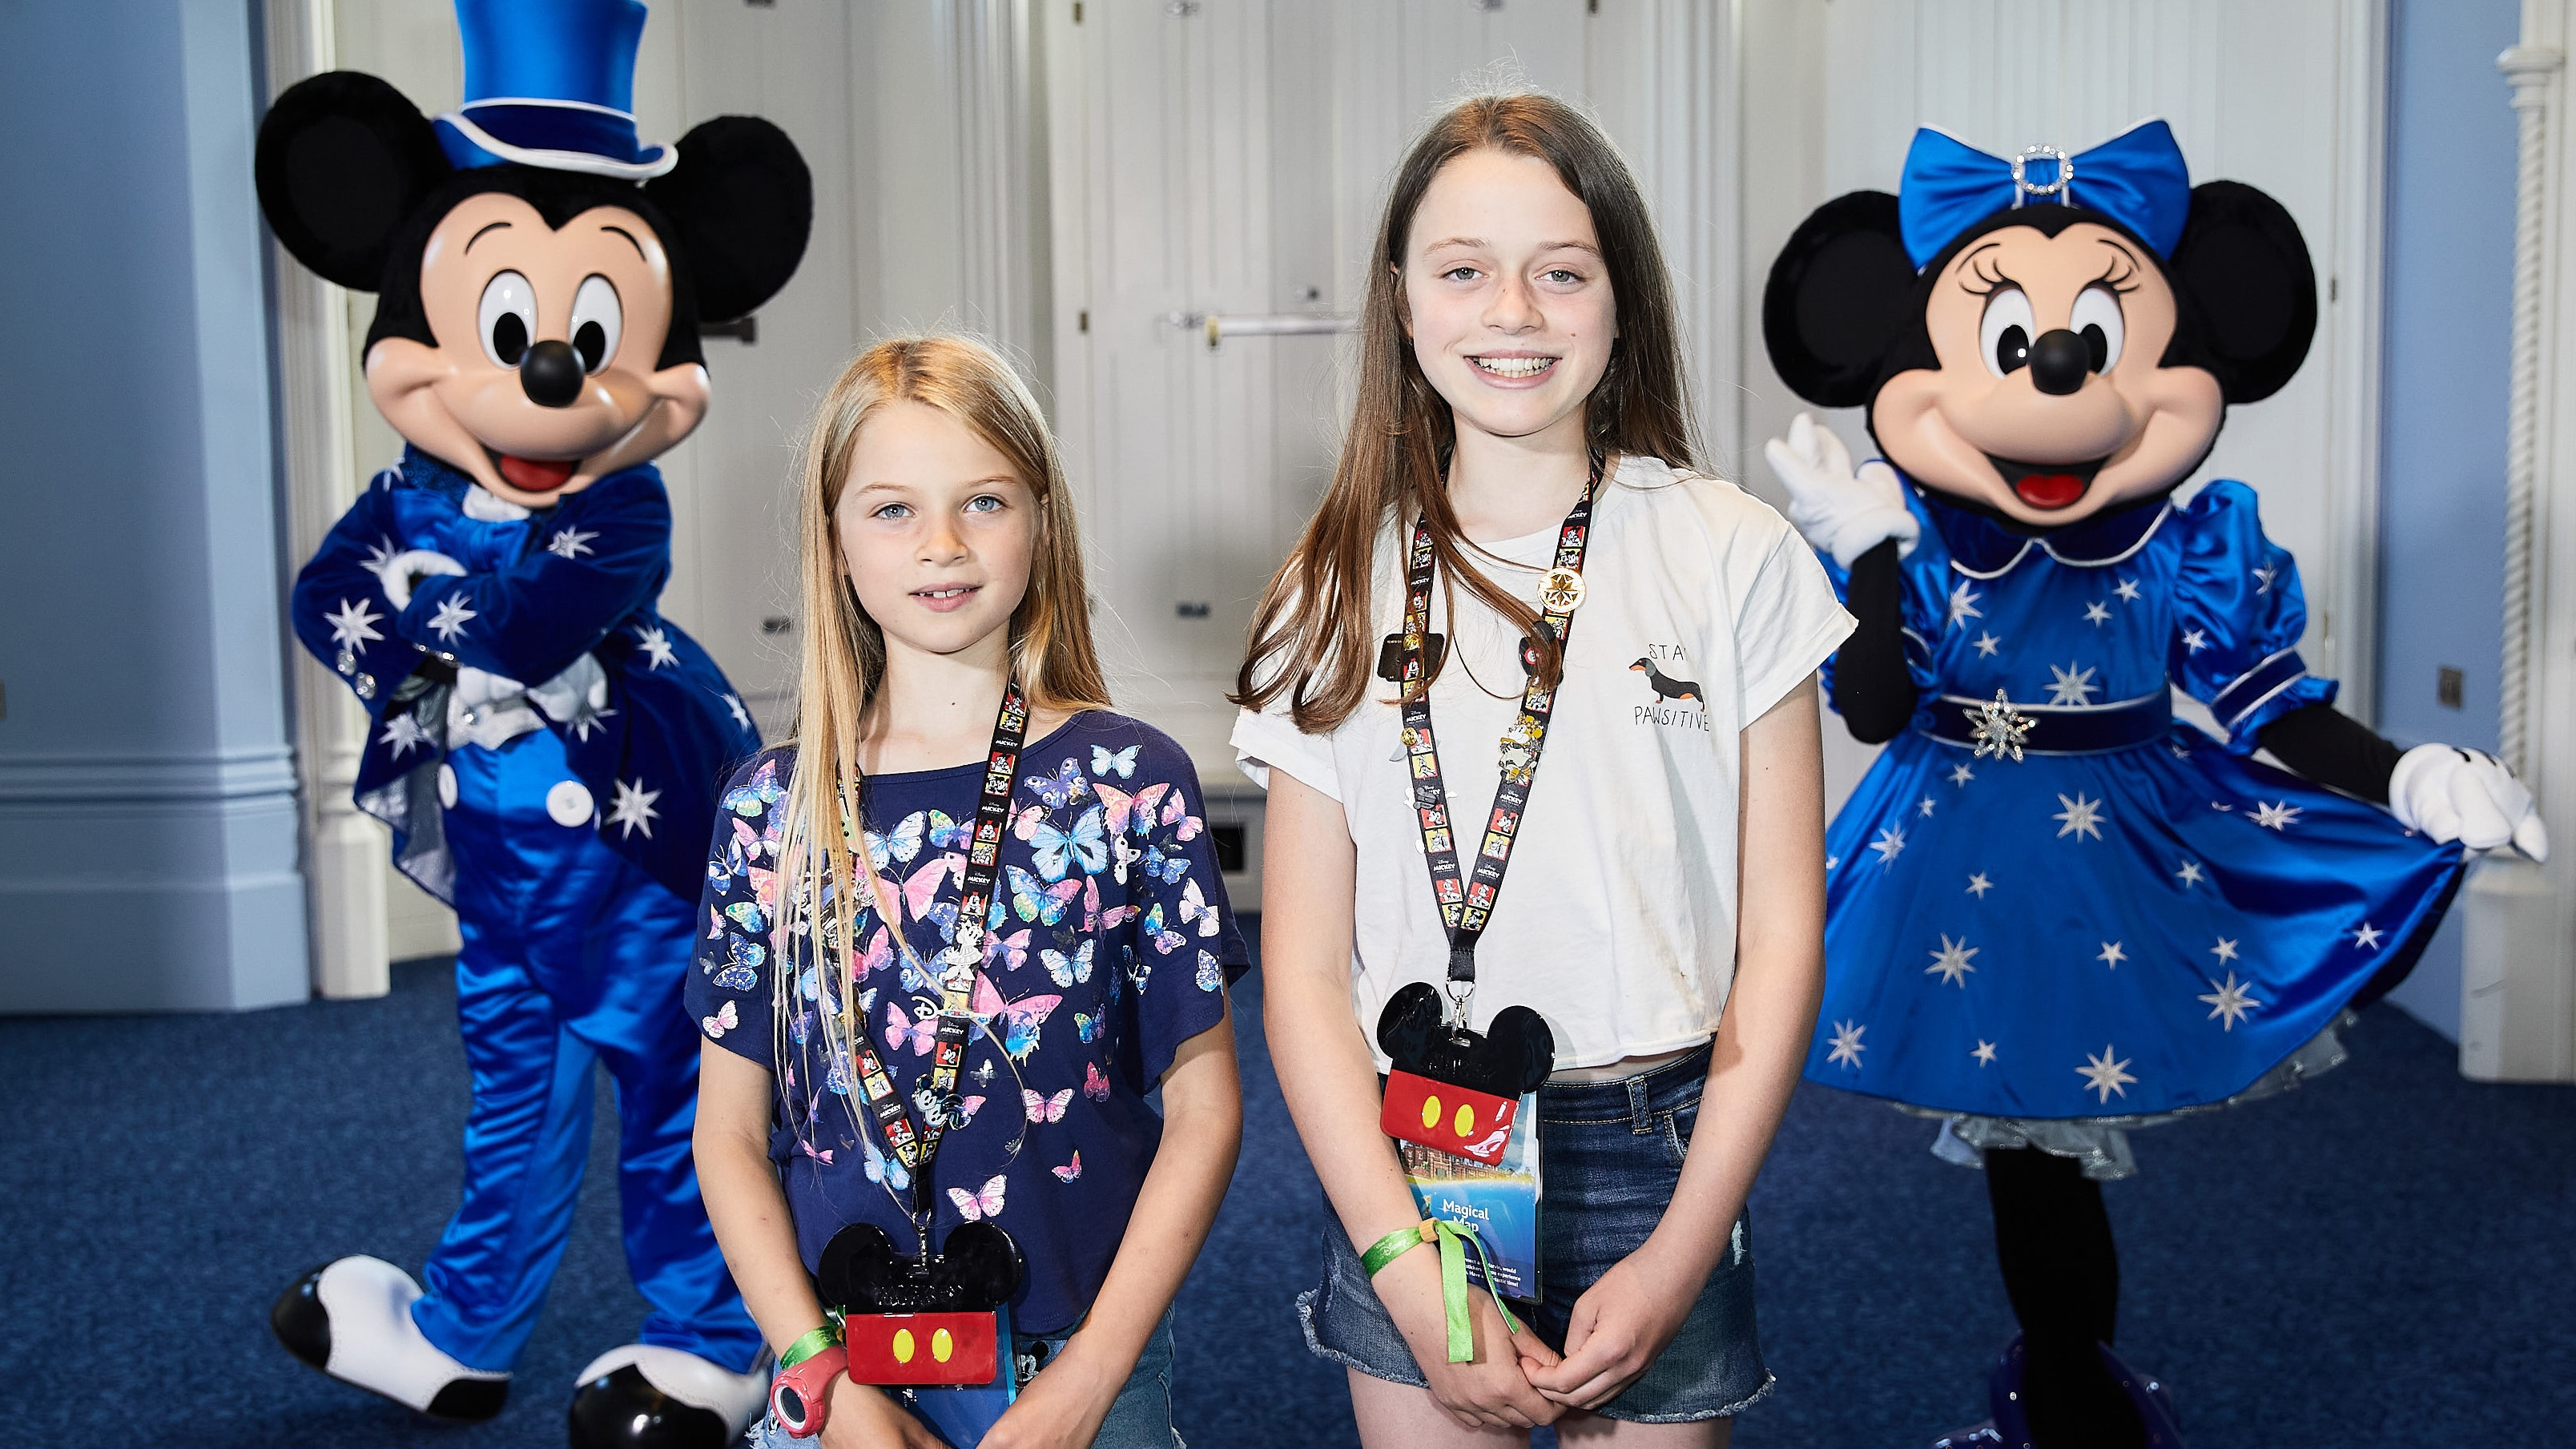 Two girls with Mickey and Minnie Mouse